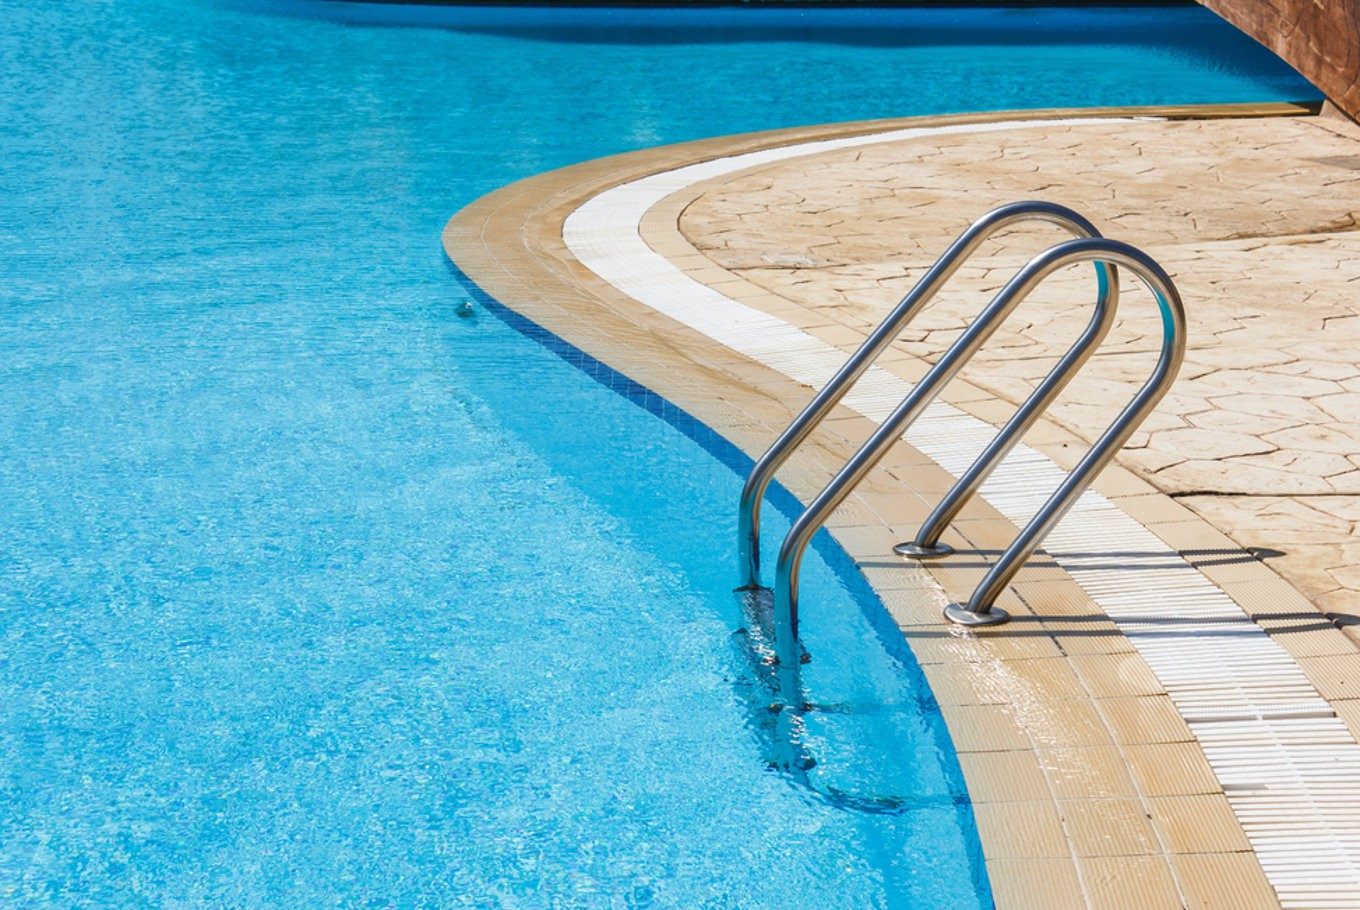 KPAI sets up ethical council after 'swimming can cause pregnancy' blunder